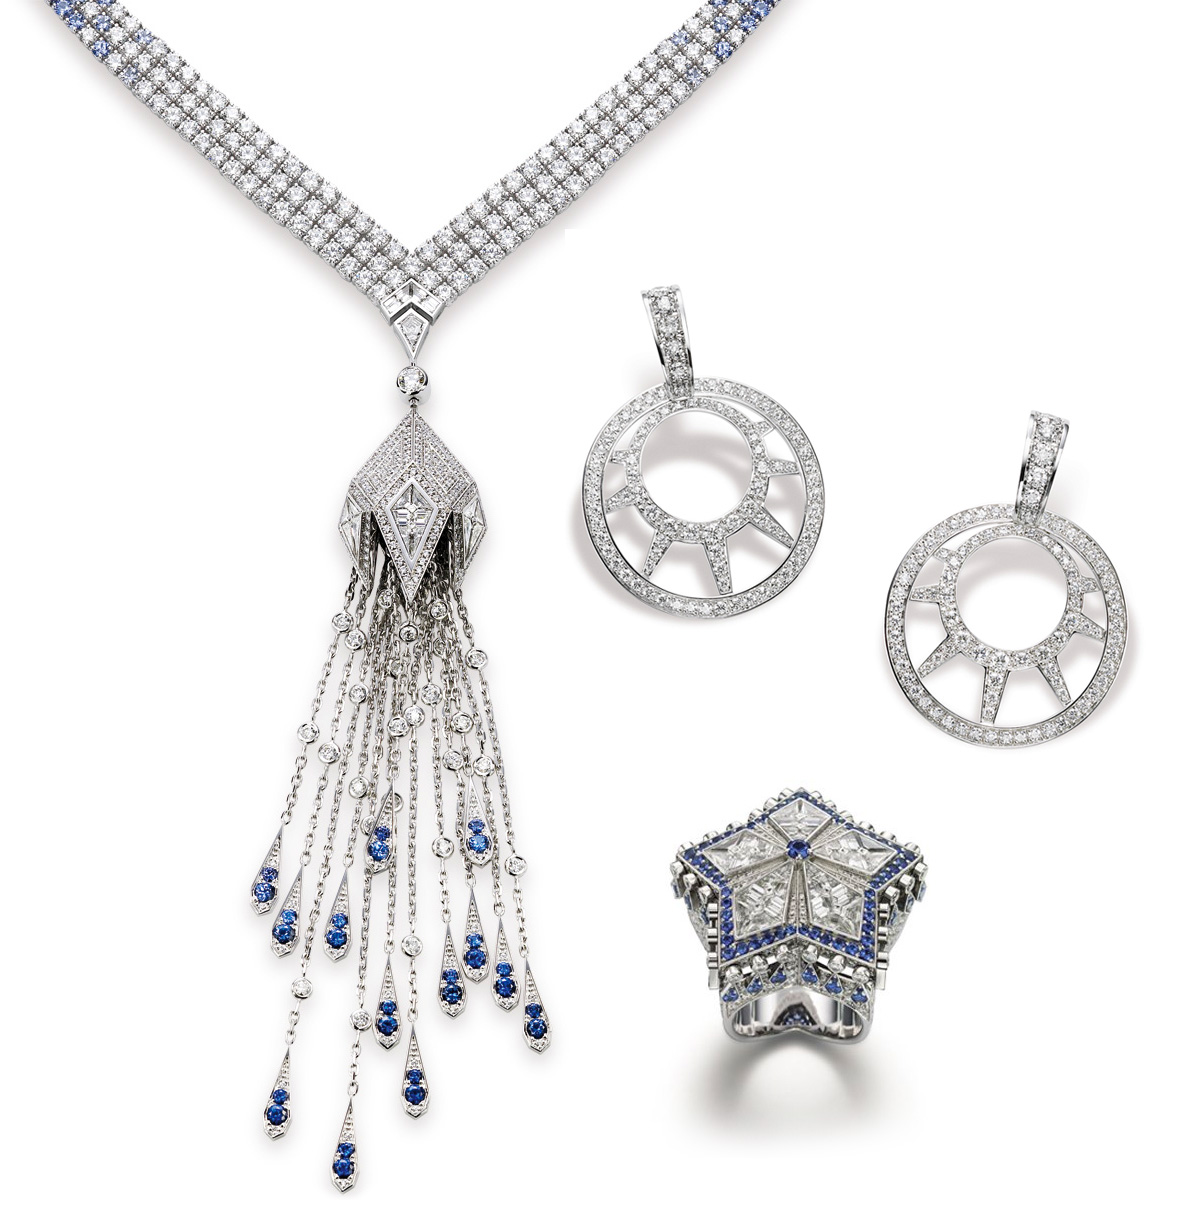 A few pieces from Piaget Limelight New-York Paris collection